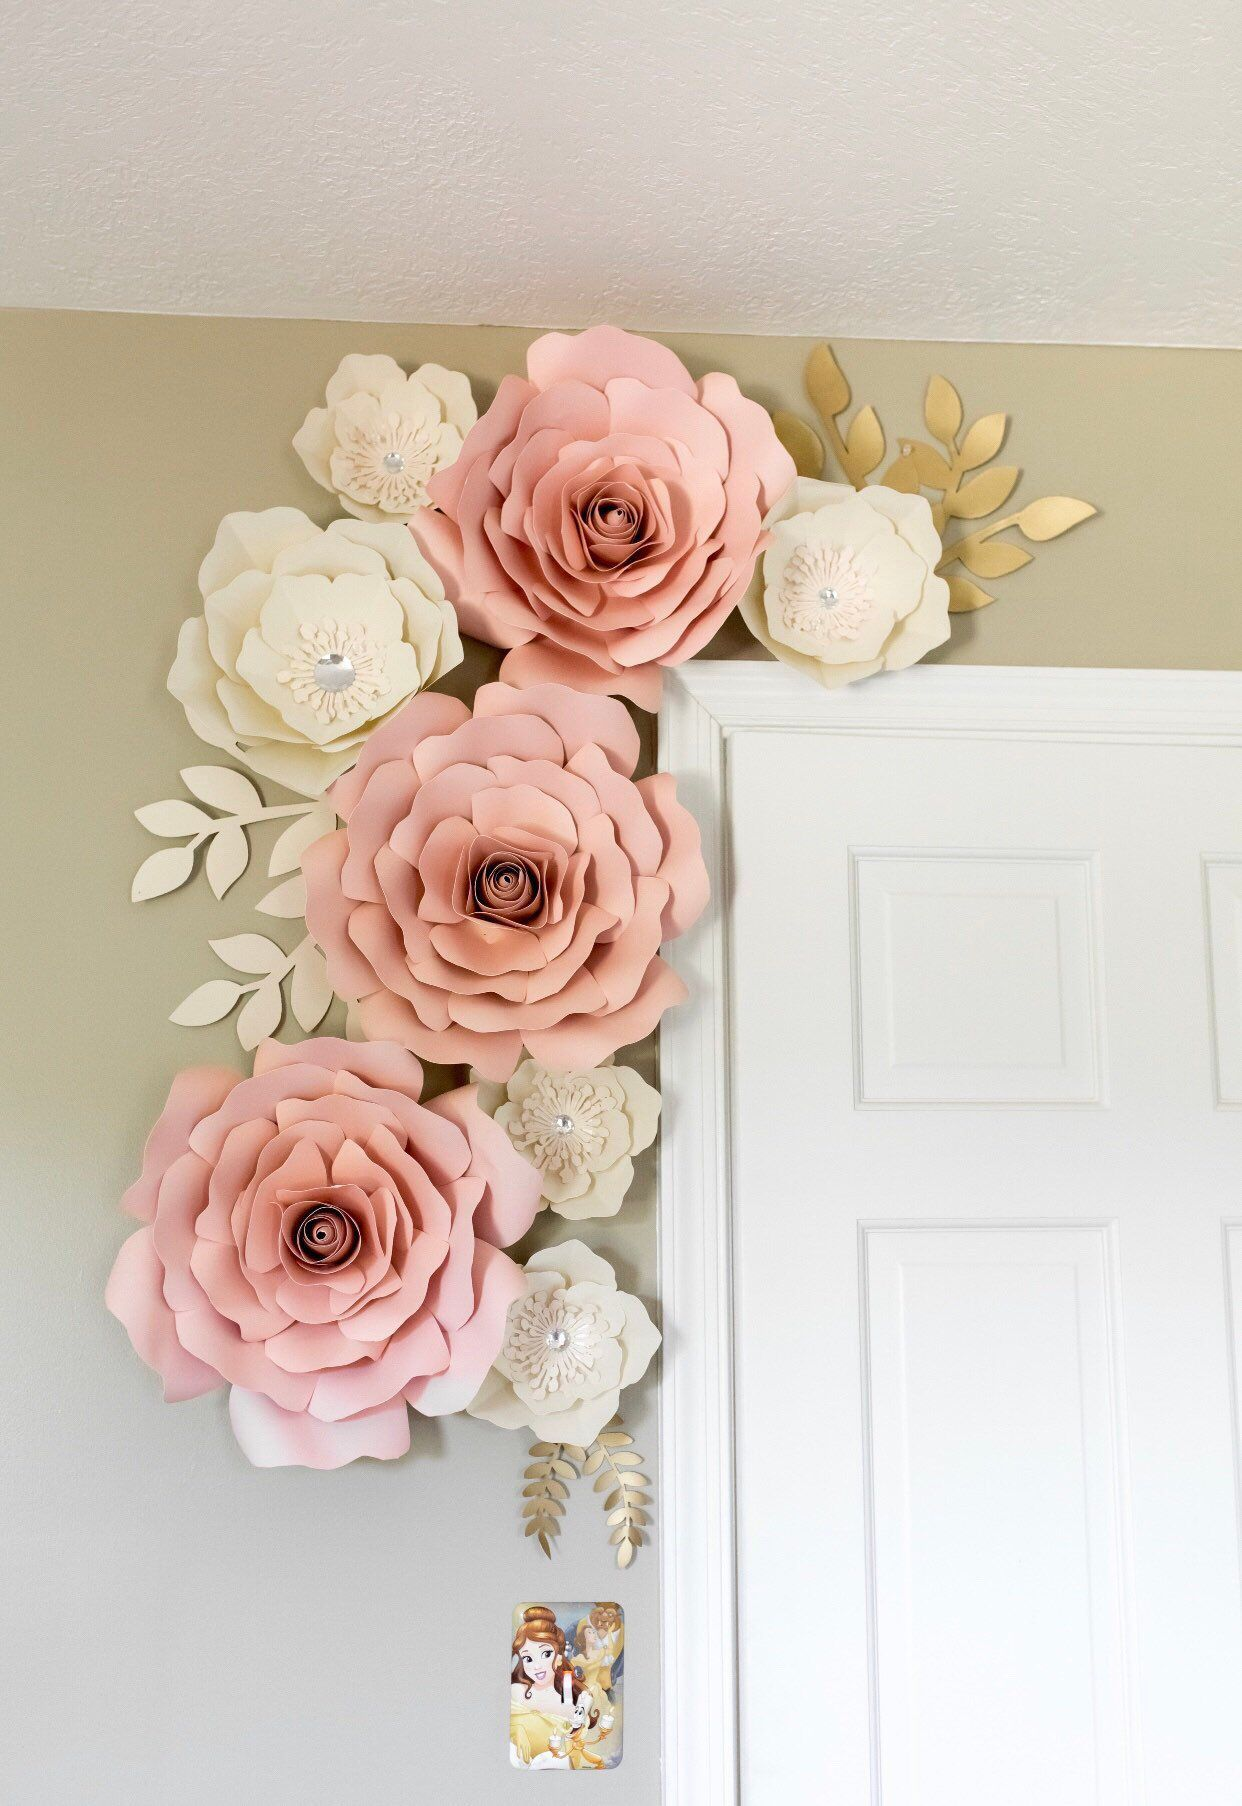 Your place to buy and sell all things handmade, #Buy #flowerdecorations #handmade #place #se...